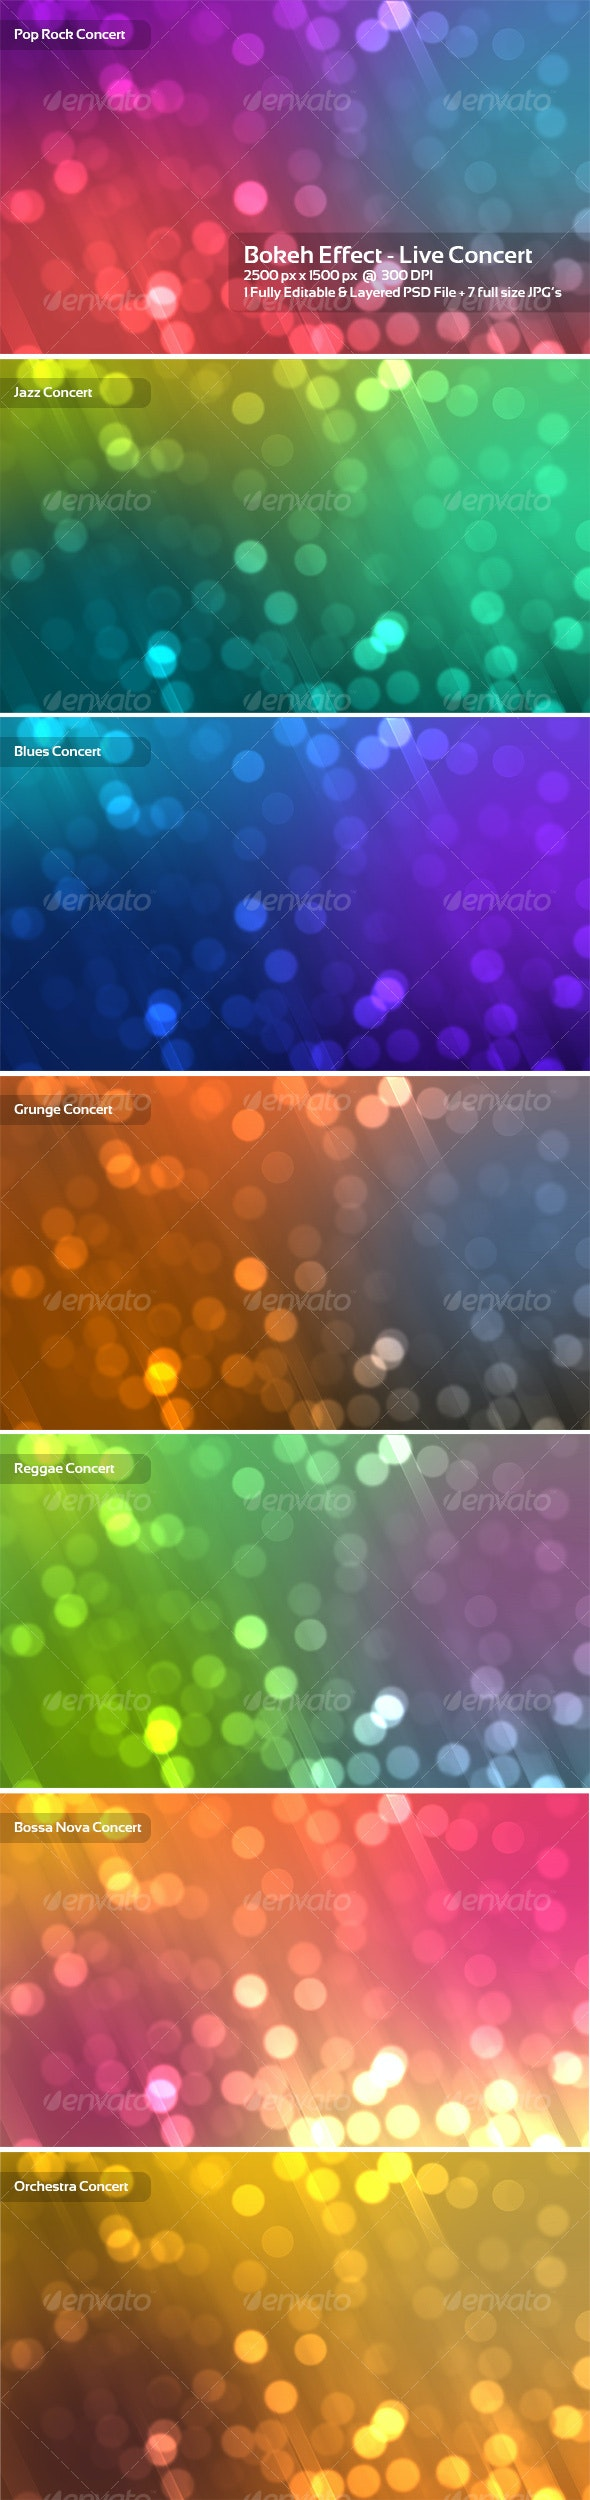 Bokeh Effect - Live Concert - Backgrounds Graphics